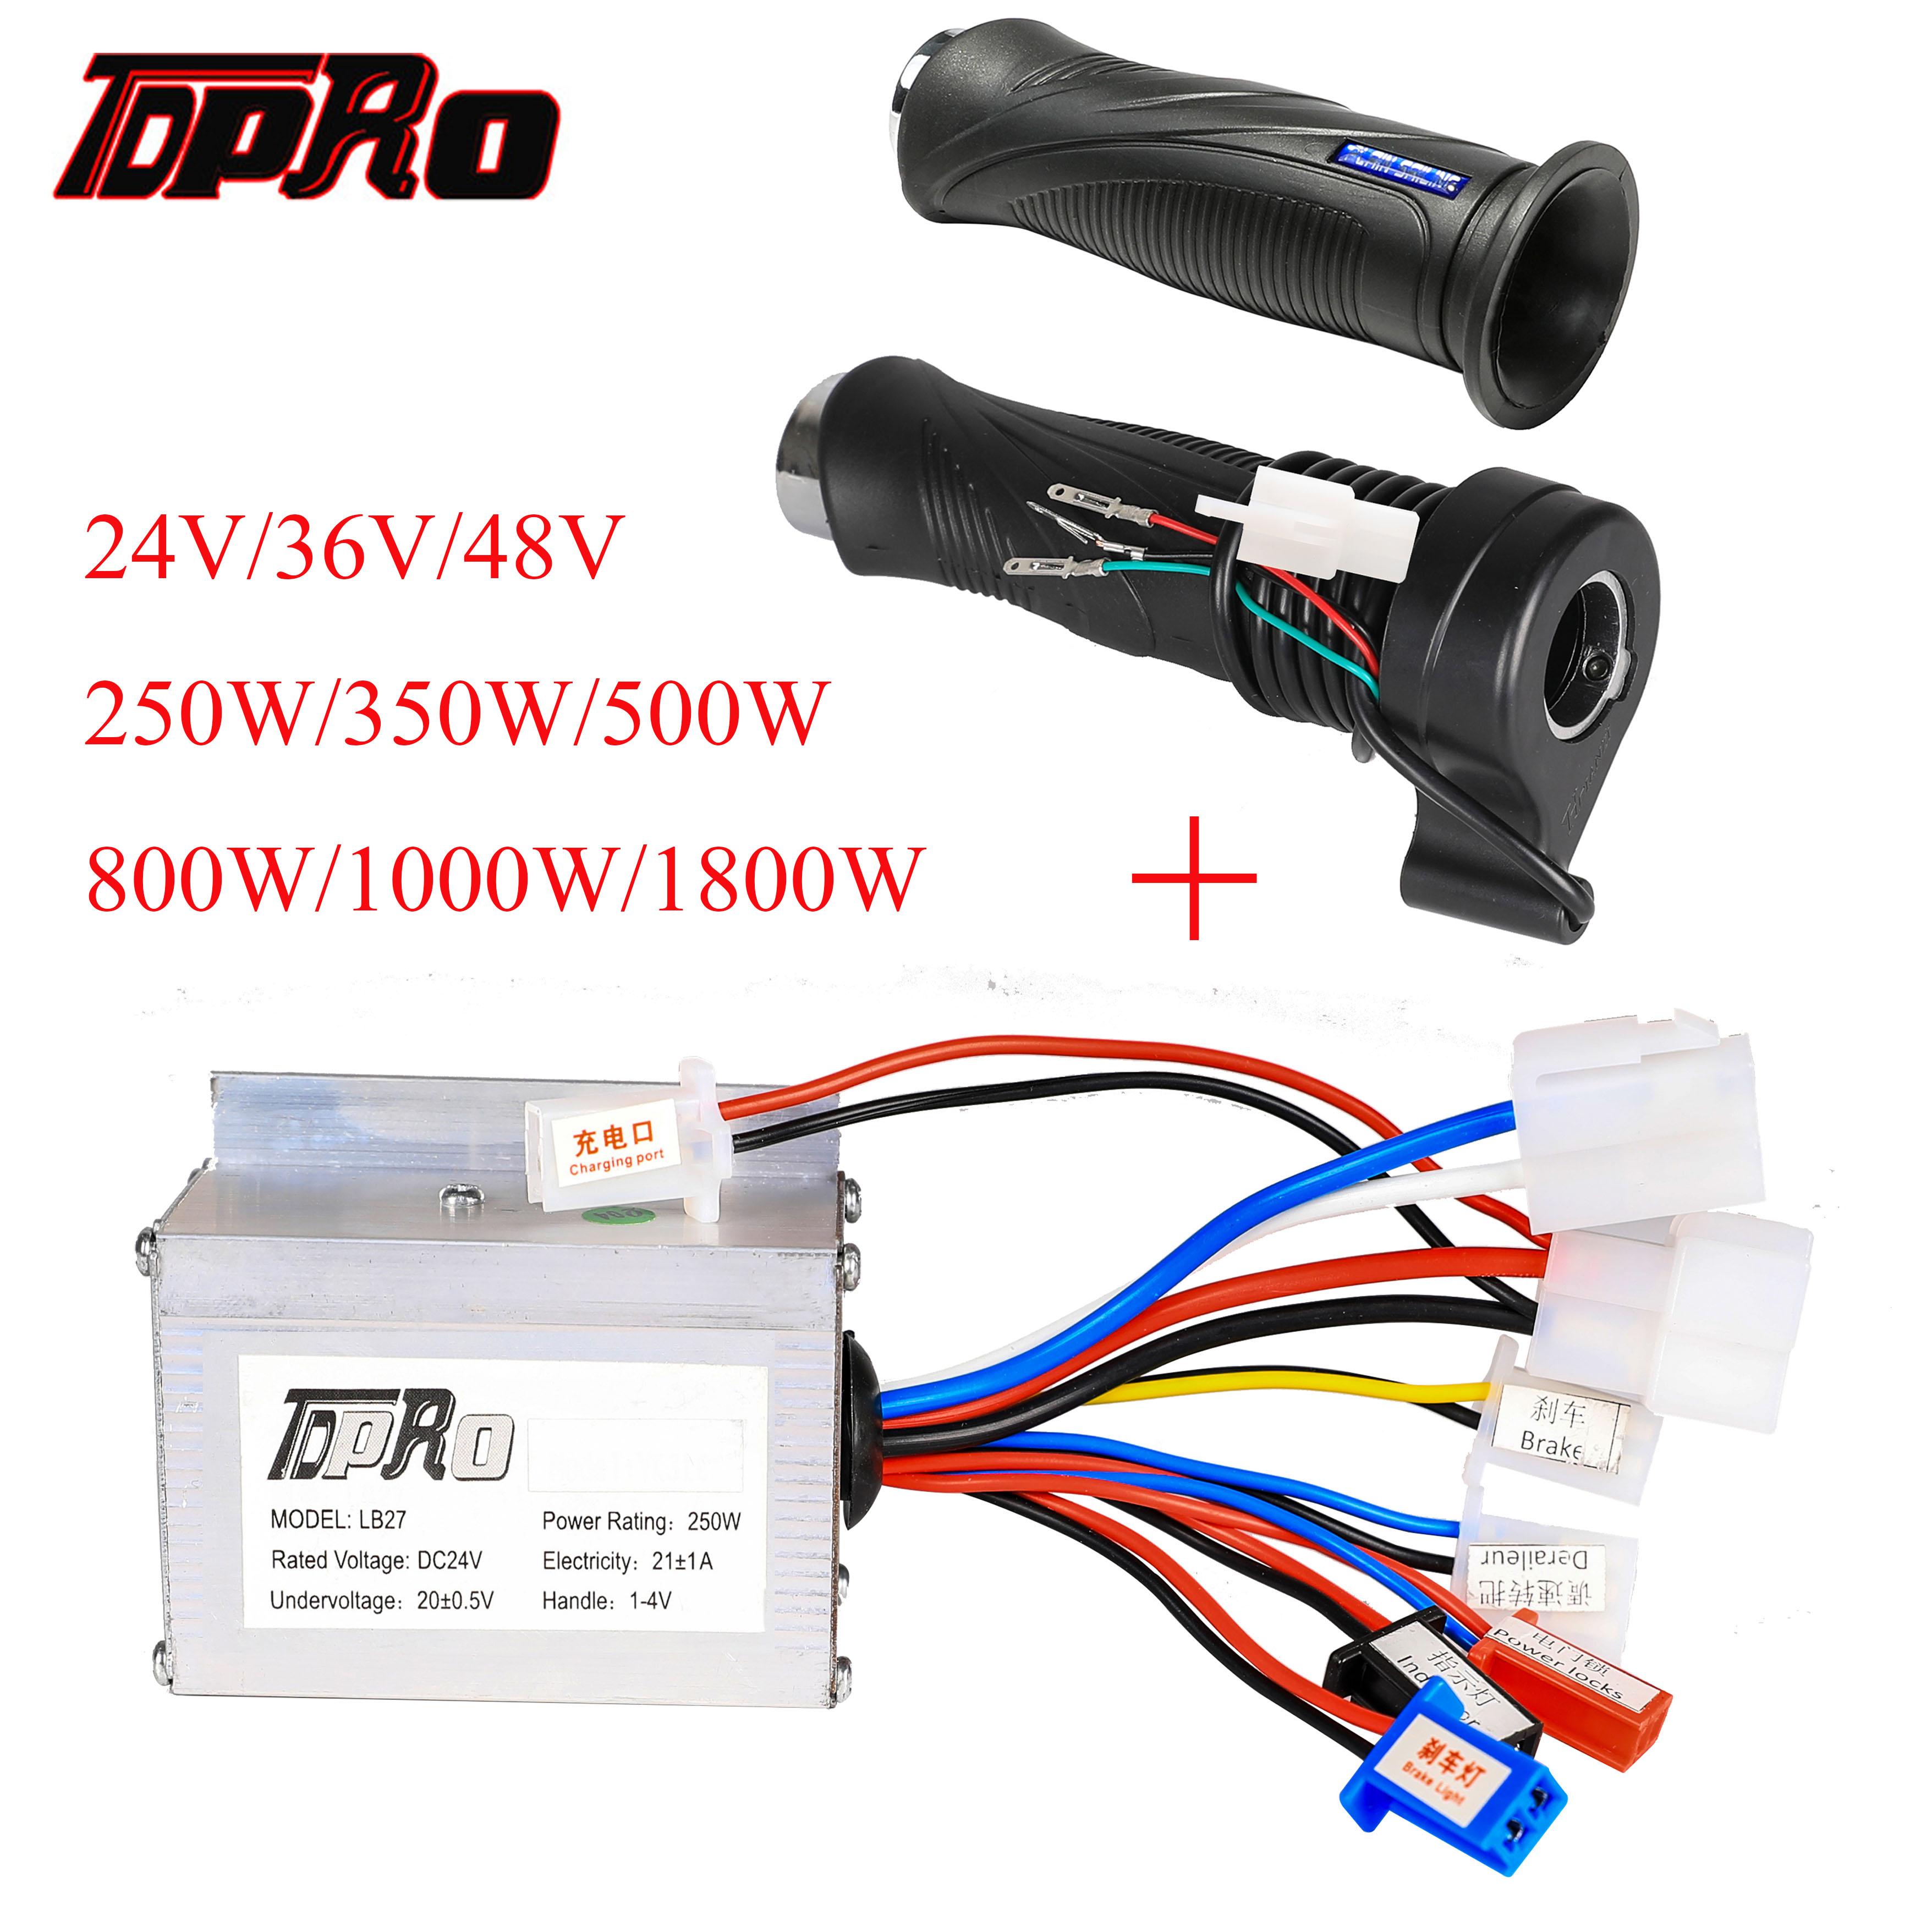 TDPRO 24V/36V/48V 350/500/800/1000W Motor Brush Controller Speed Throttle Twist Grip For Electric Bicycle Scooter ATV Buggy Bike